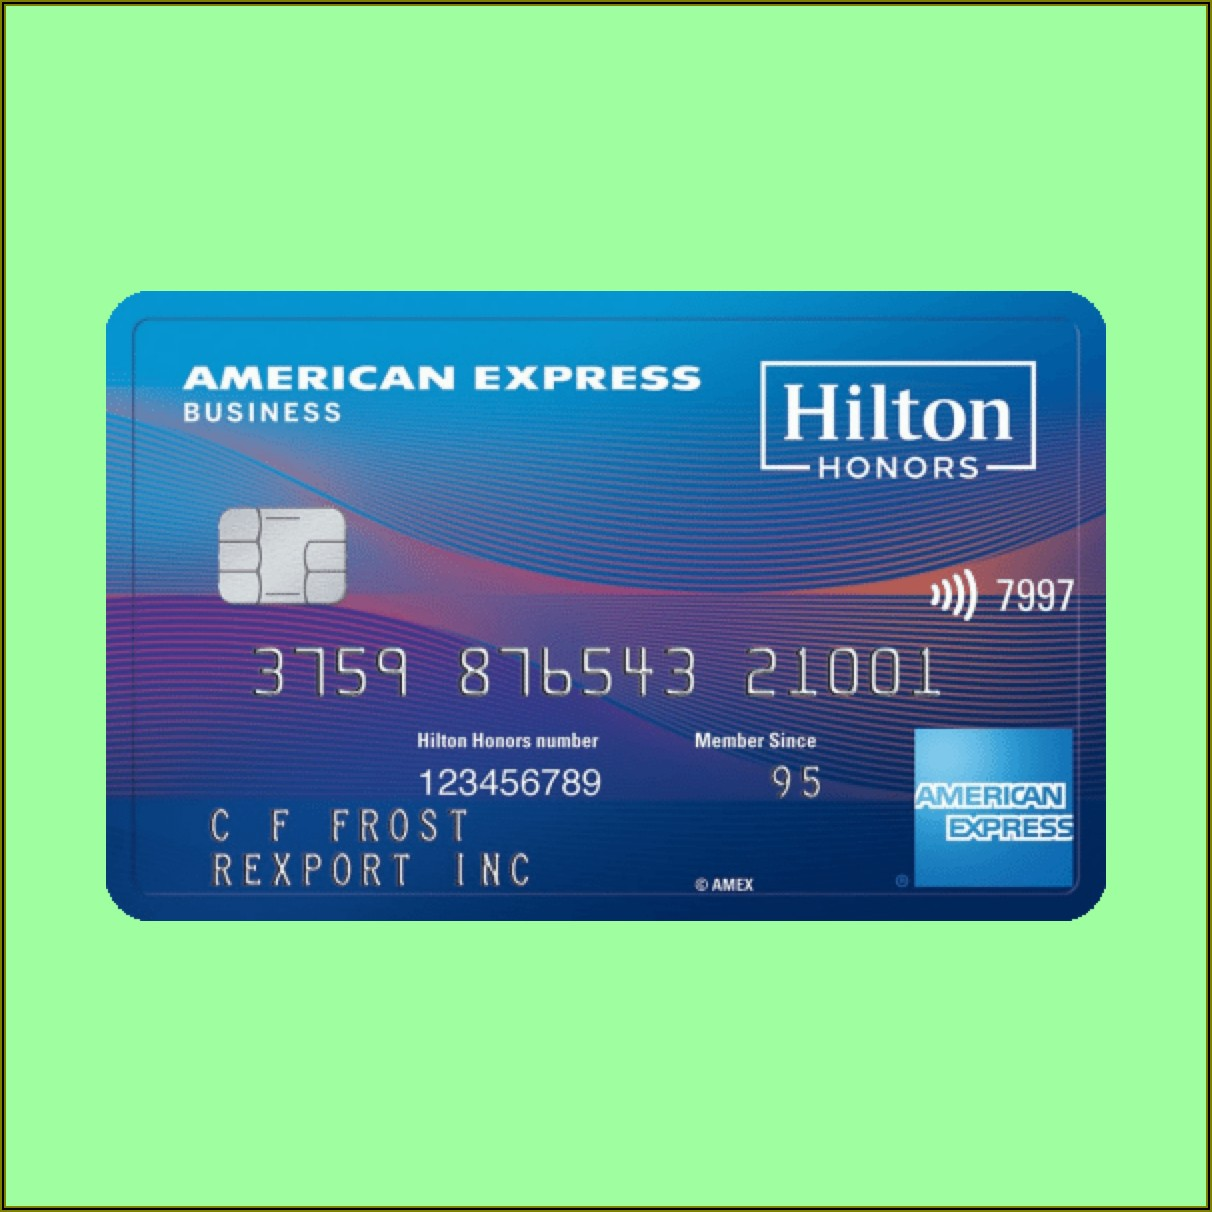 Hilton Honors Business Card Benefits